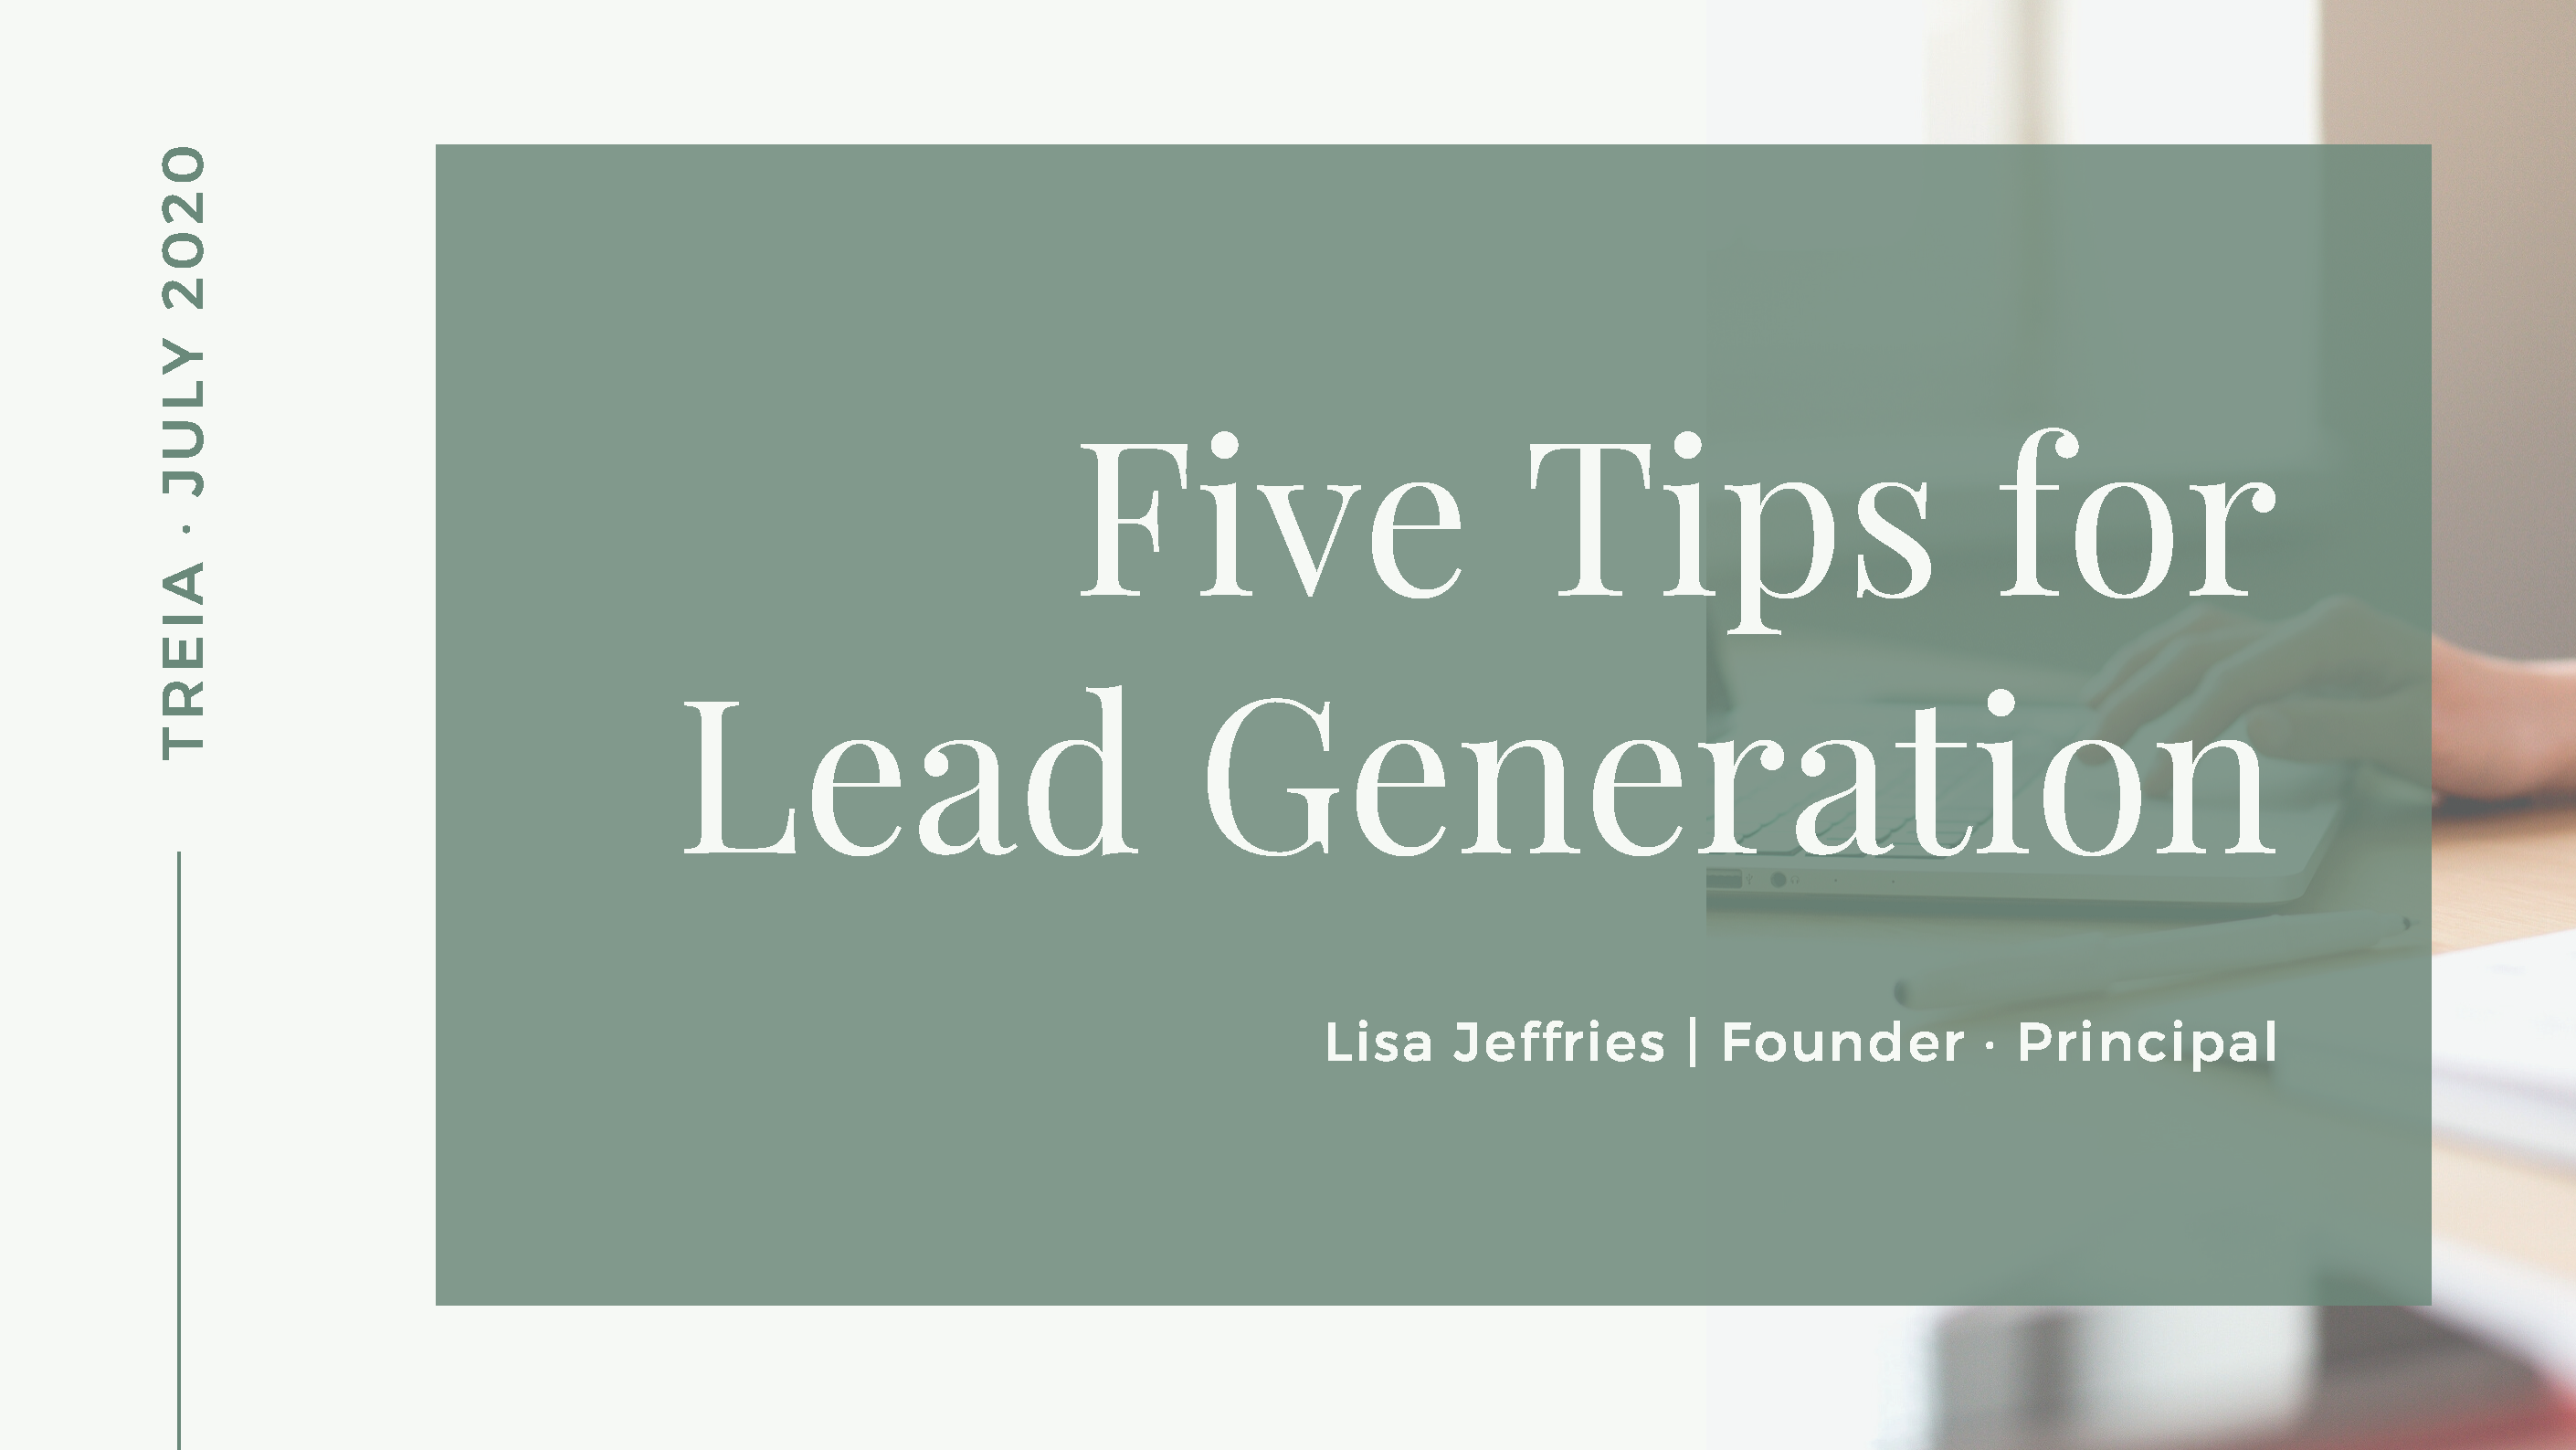 Five Tips for Lead Generation - Raleighwood Media Group - Lisa Jeffries for TREIA